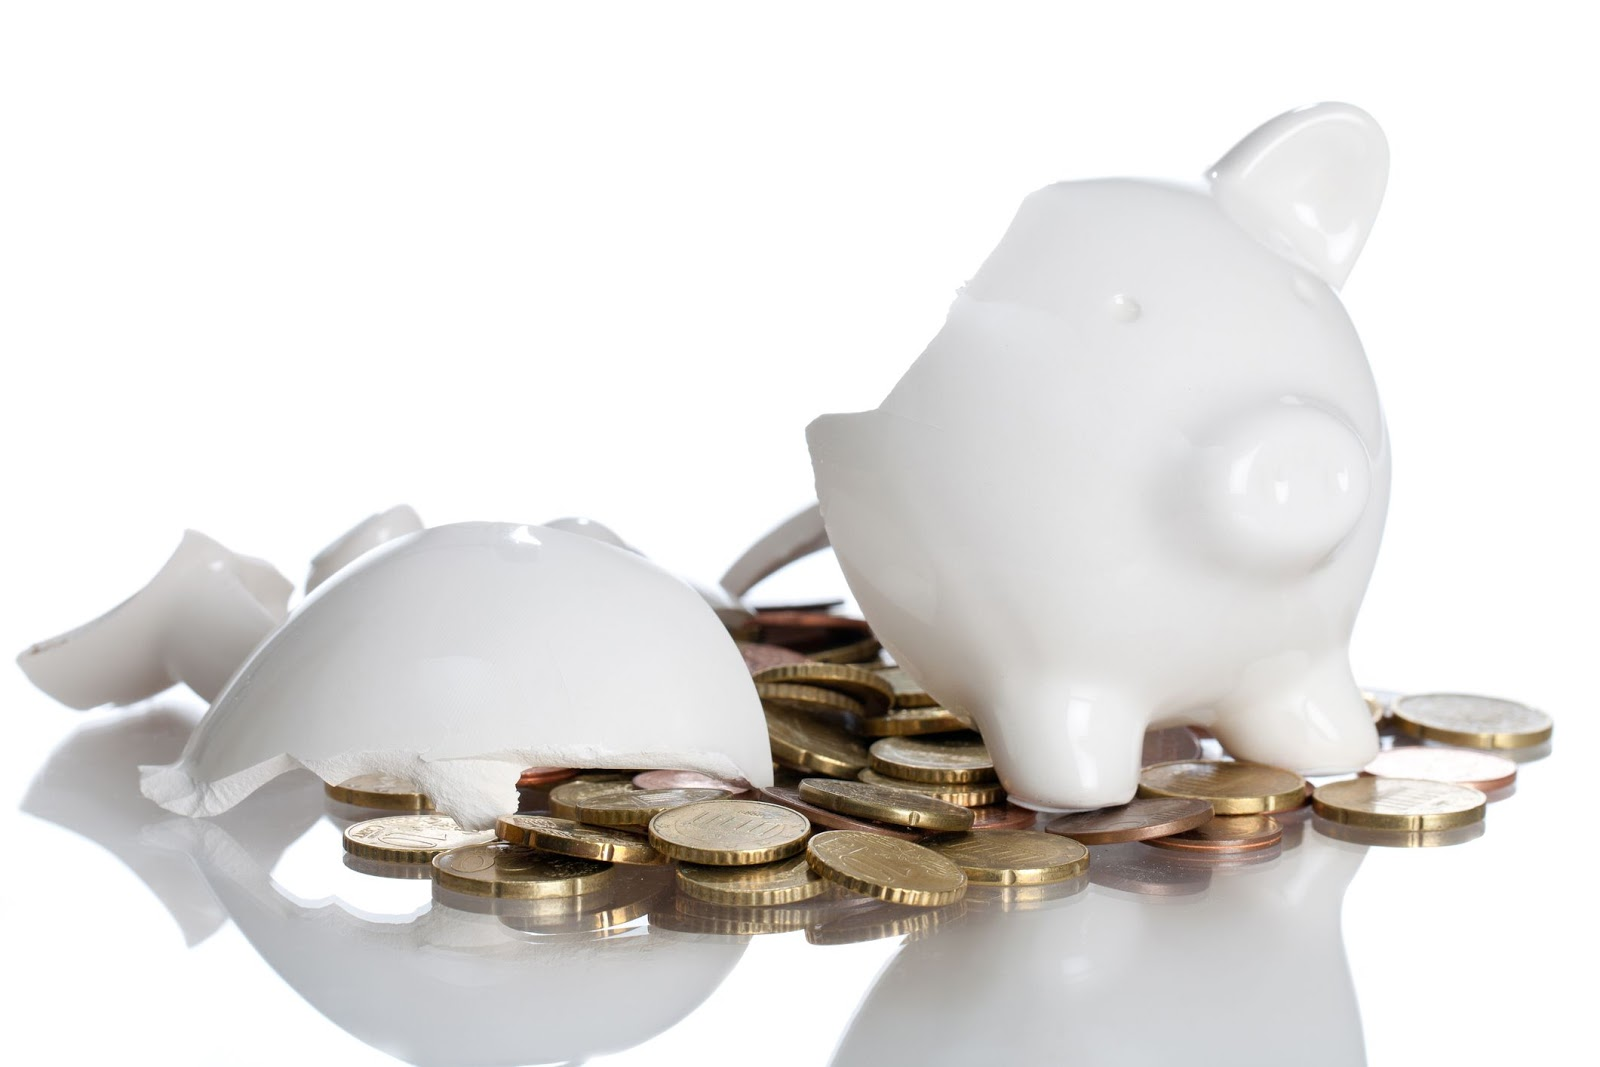 A white piggy bank broken with coins spilling out.